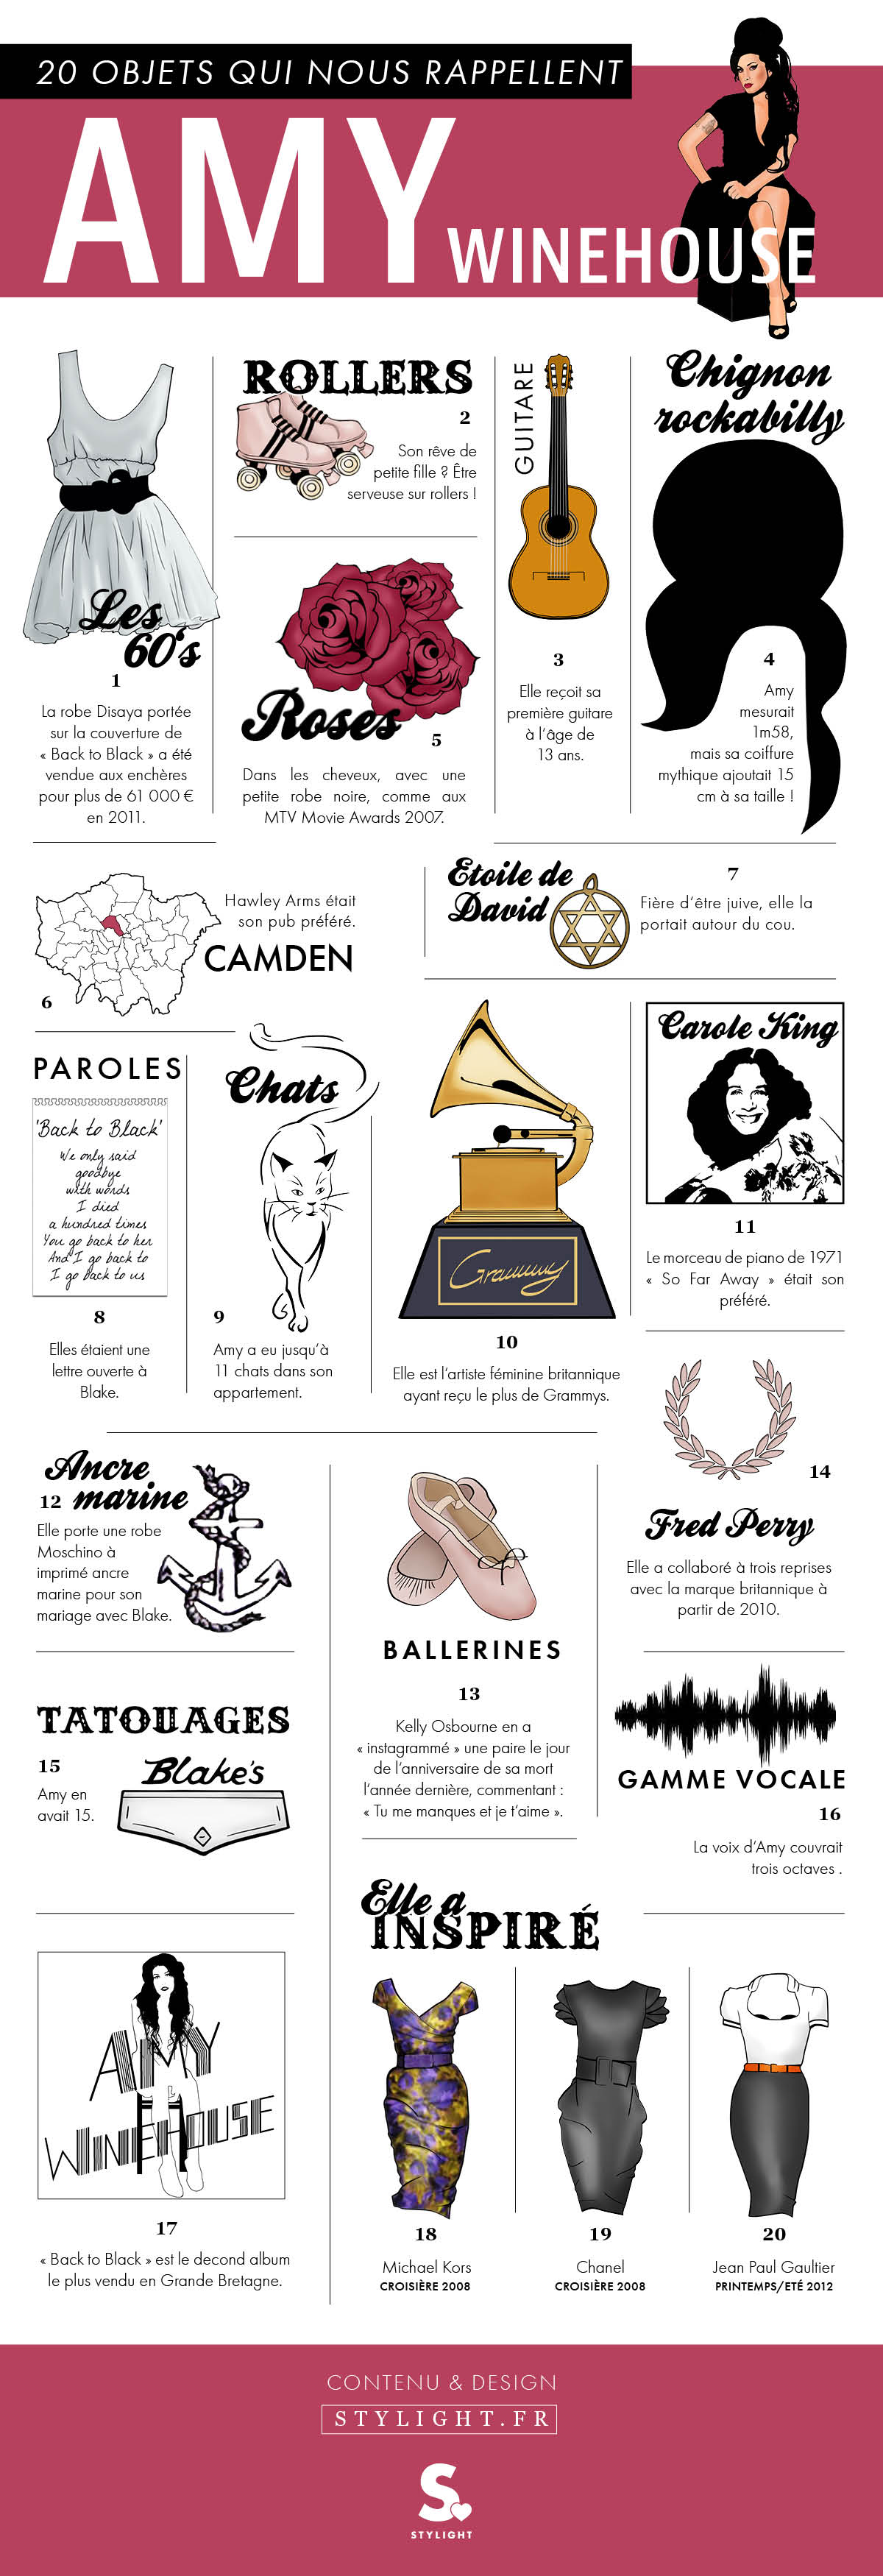 Amy Winehouse infographie